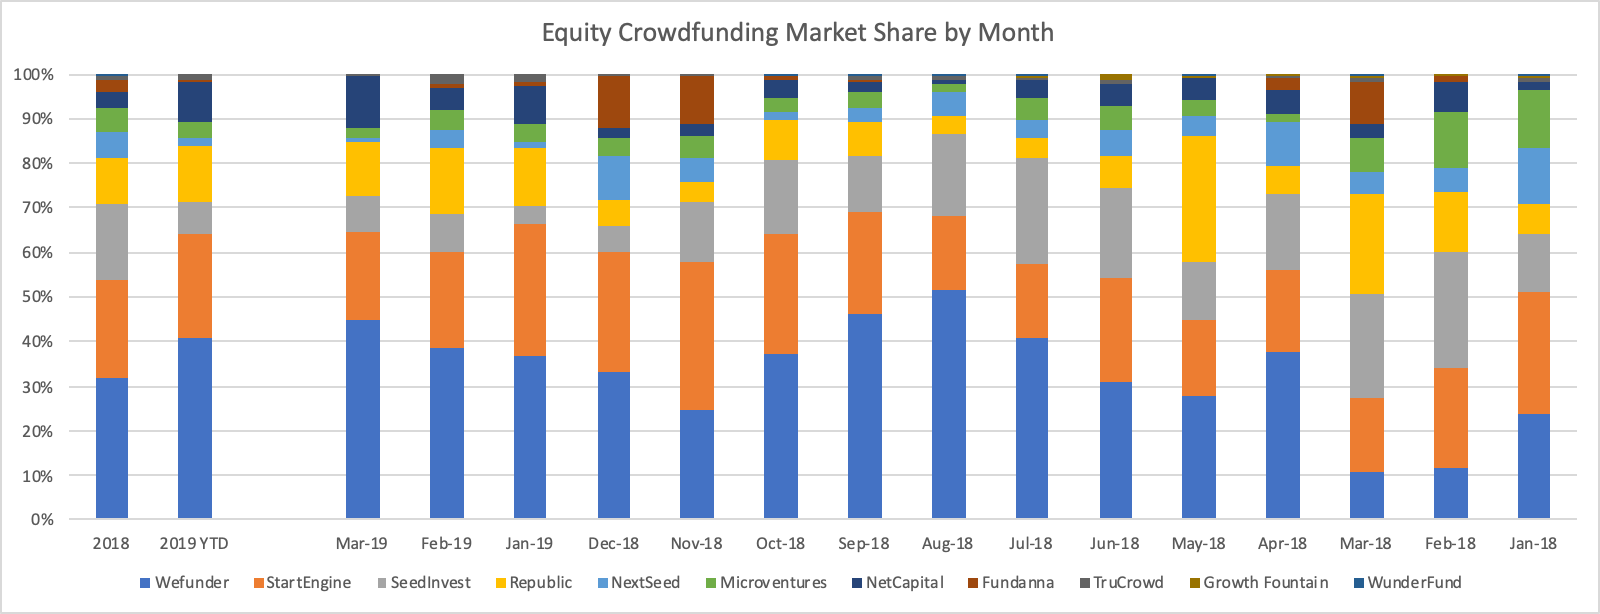 Equity Crowdfunding over time